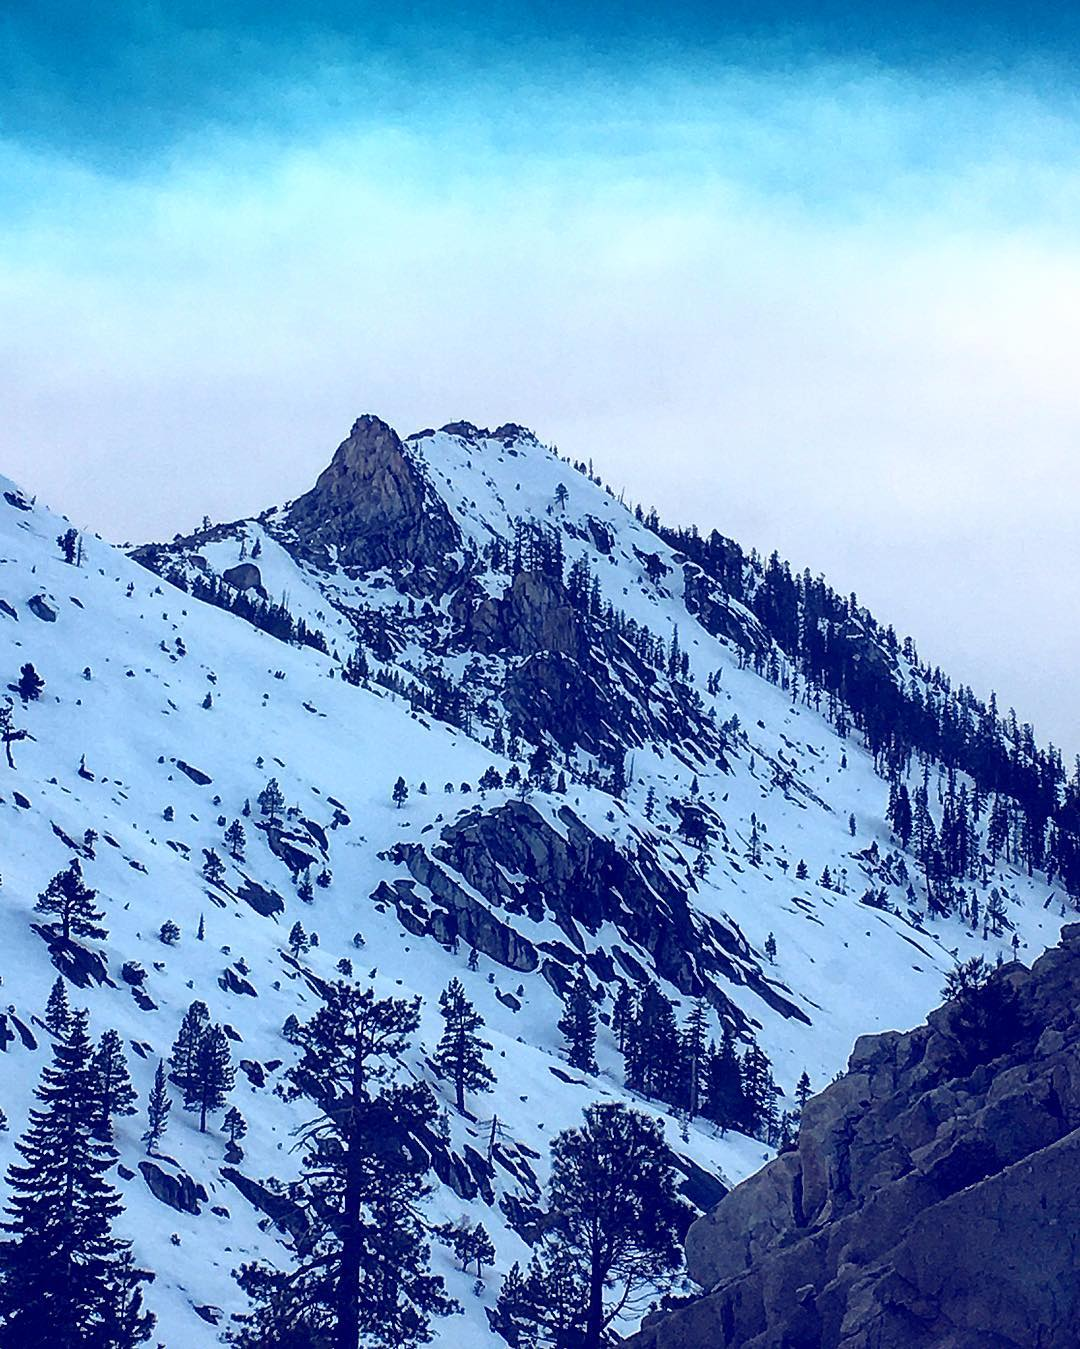 Name this peak. It's in Tahoe, and you can hike it. #mountains #inspiredbynature #drivenbydesign #risedesigns #risedesignstahoe #tahoetribe #sierranevada #winter #tahoesnaps